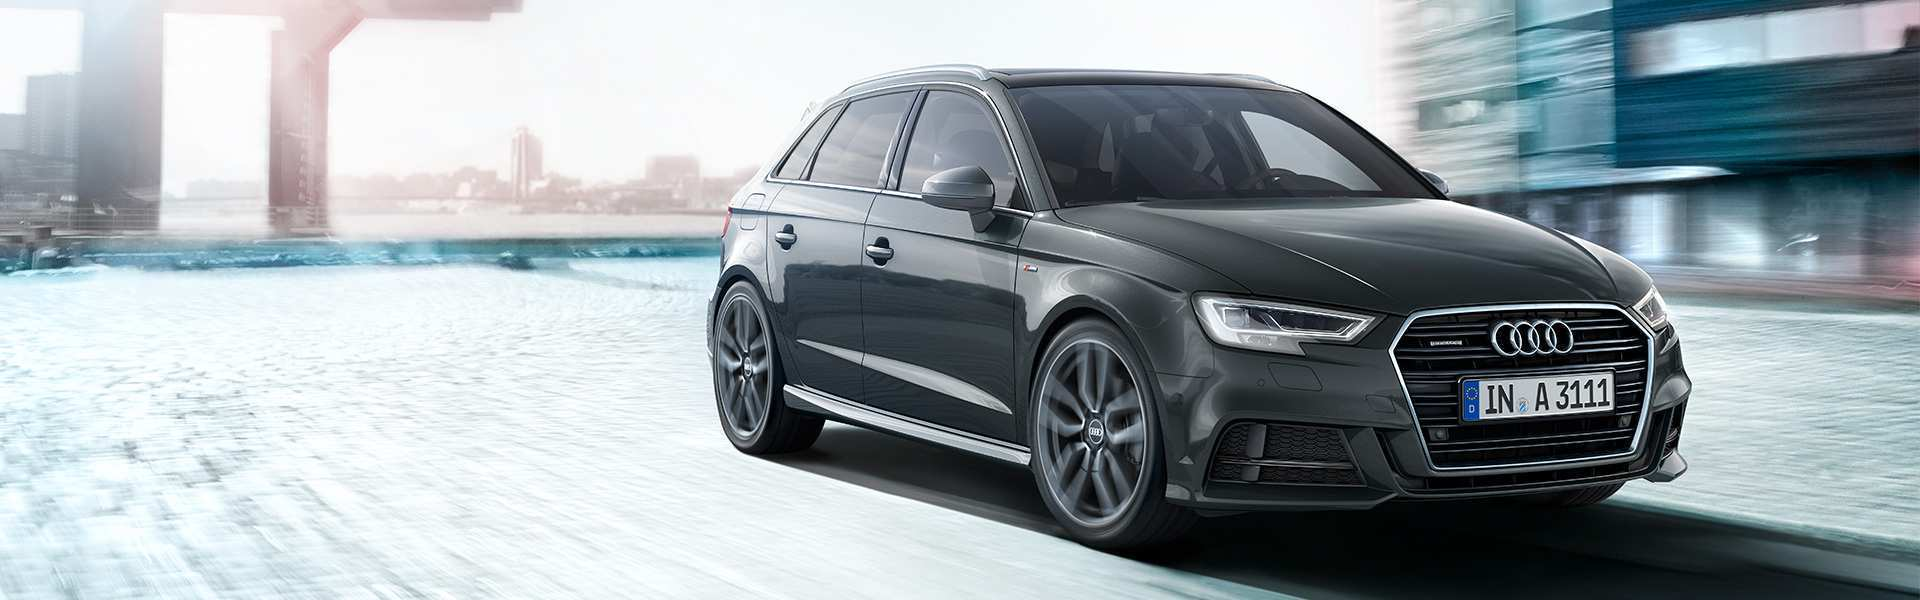 12 New 2020 Audi A3 Wallpaper